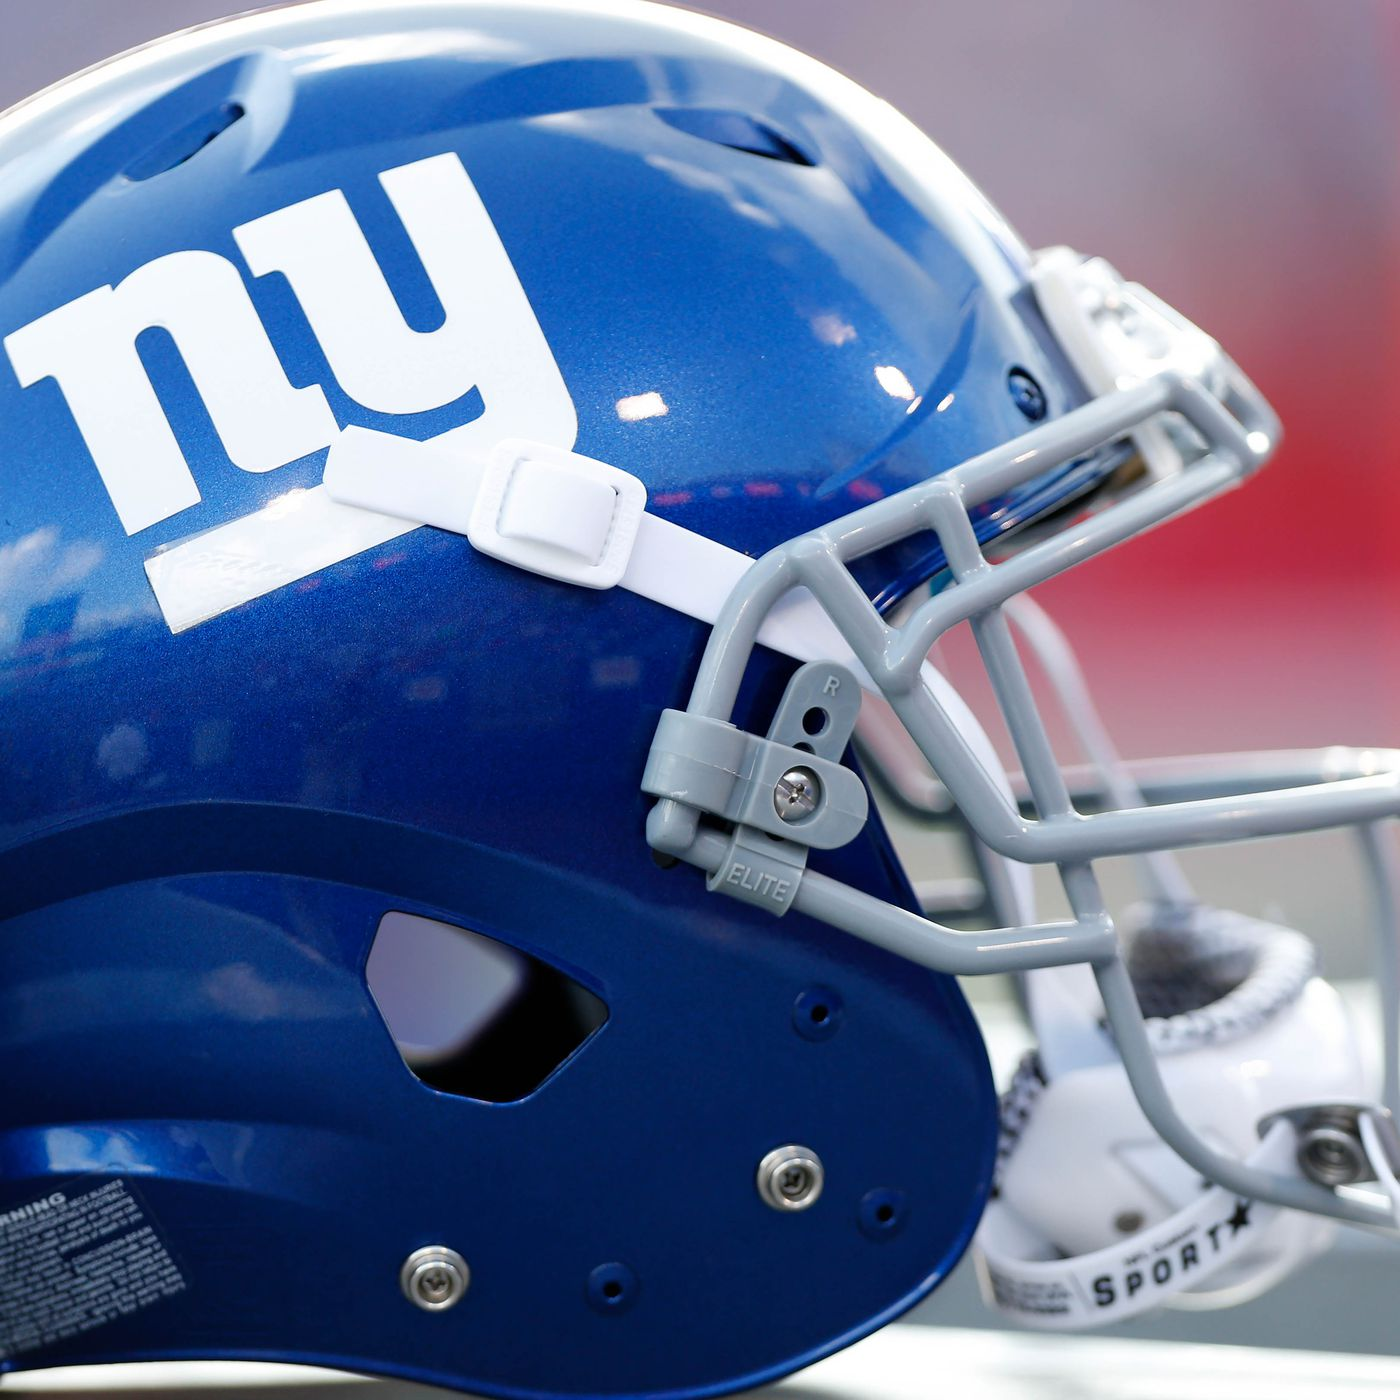 93a13950 POLL: Which New York Giants' logo is your favorite? - Big Blue View